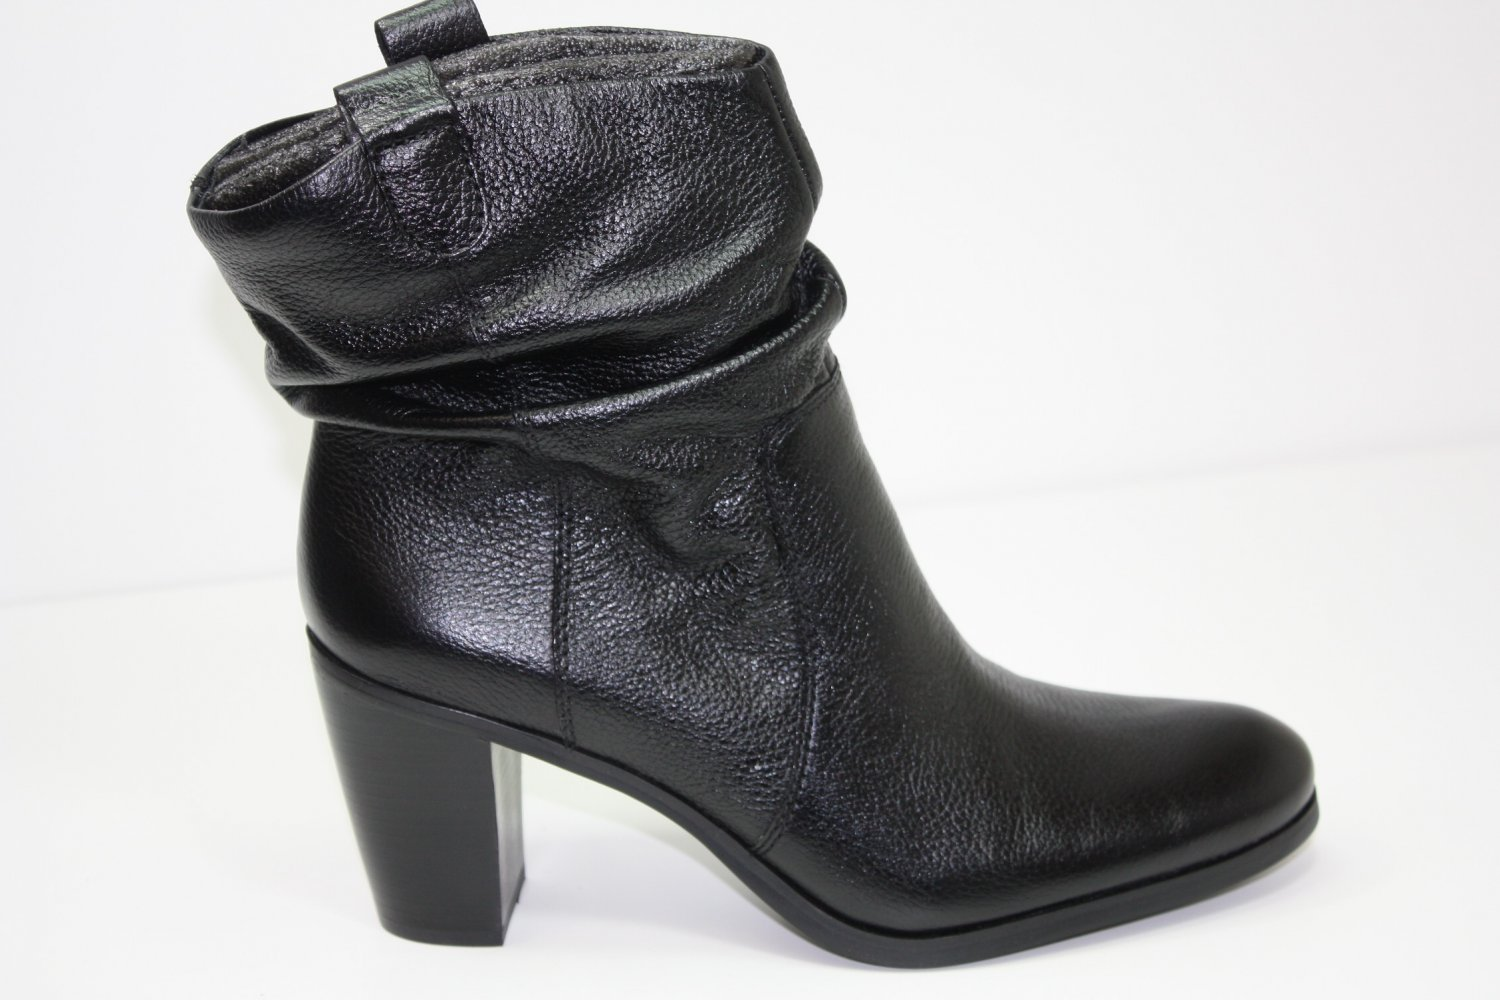 Circa Joan&David Kirstin Boots Black Shoes US 8.5 $139